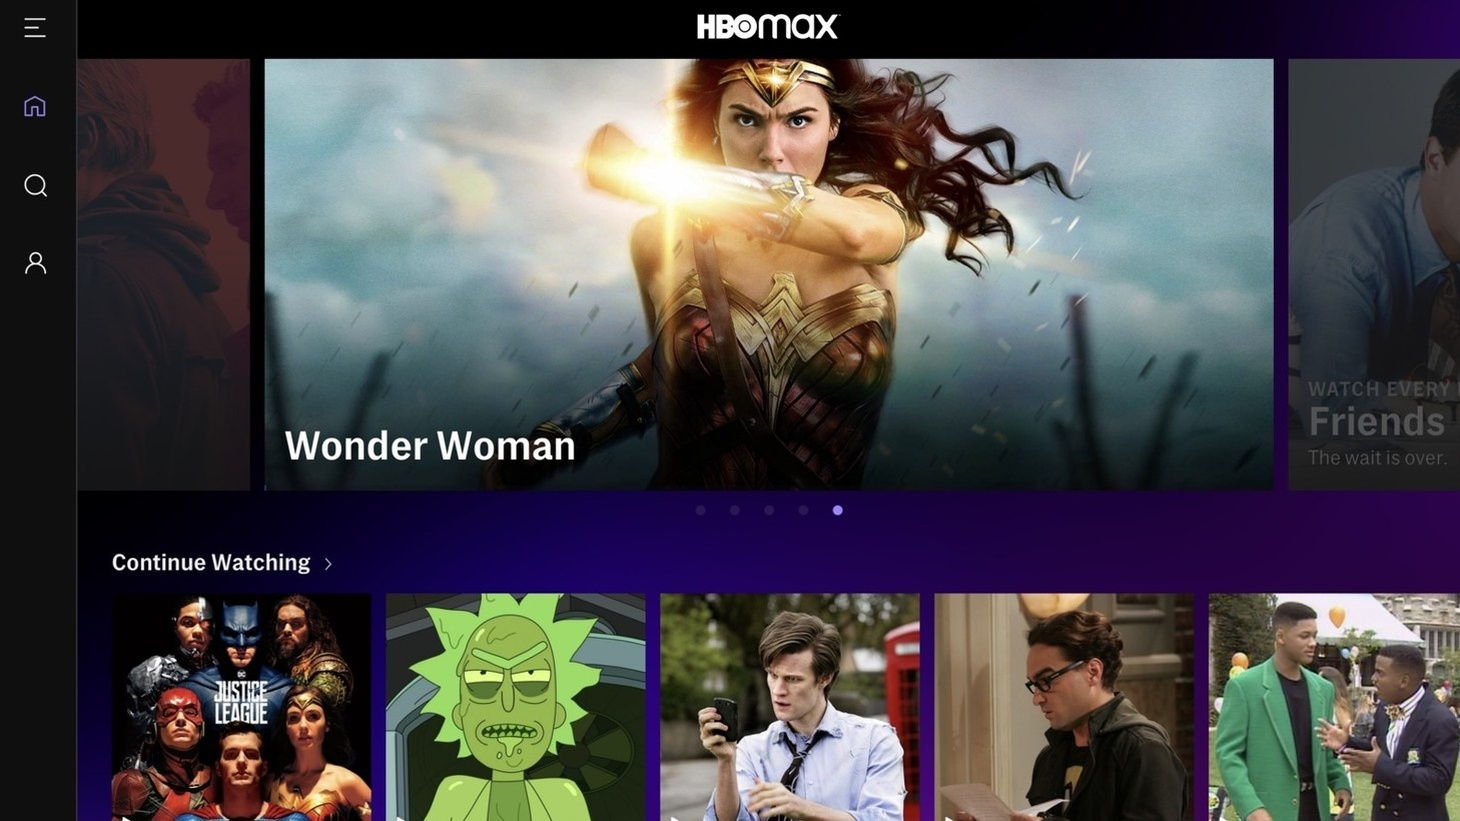 WarnerMedia wants HBO Max to be able to compete with all the other big streamers. In a huge move, the company is putting all of Warner Bros.' 2021 movies on HBO Max the same day they open in theaters.